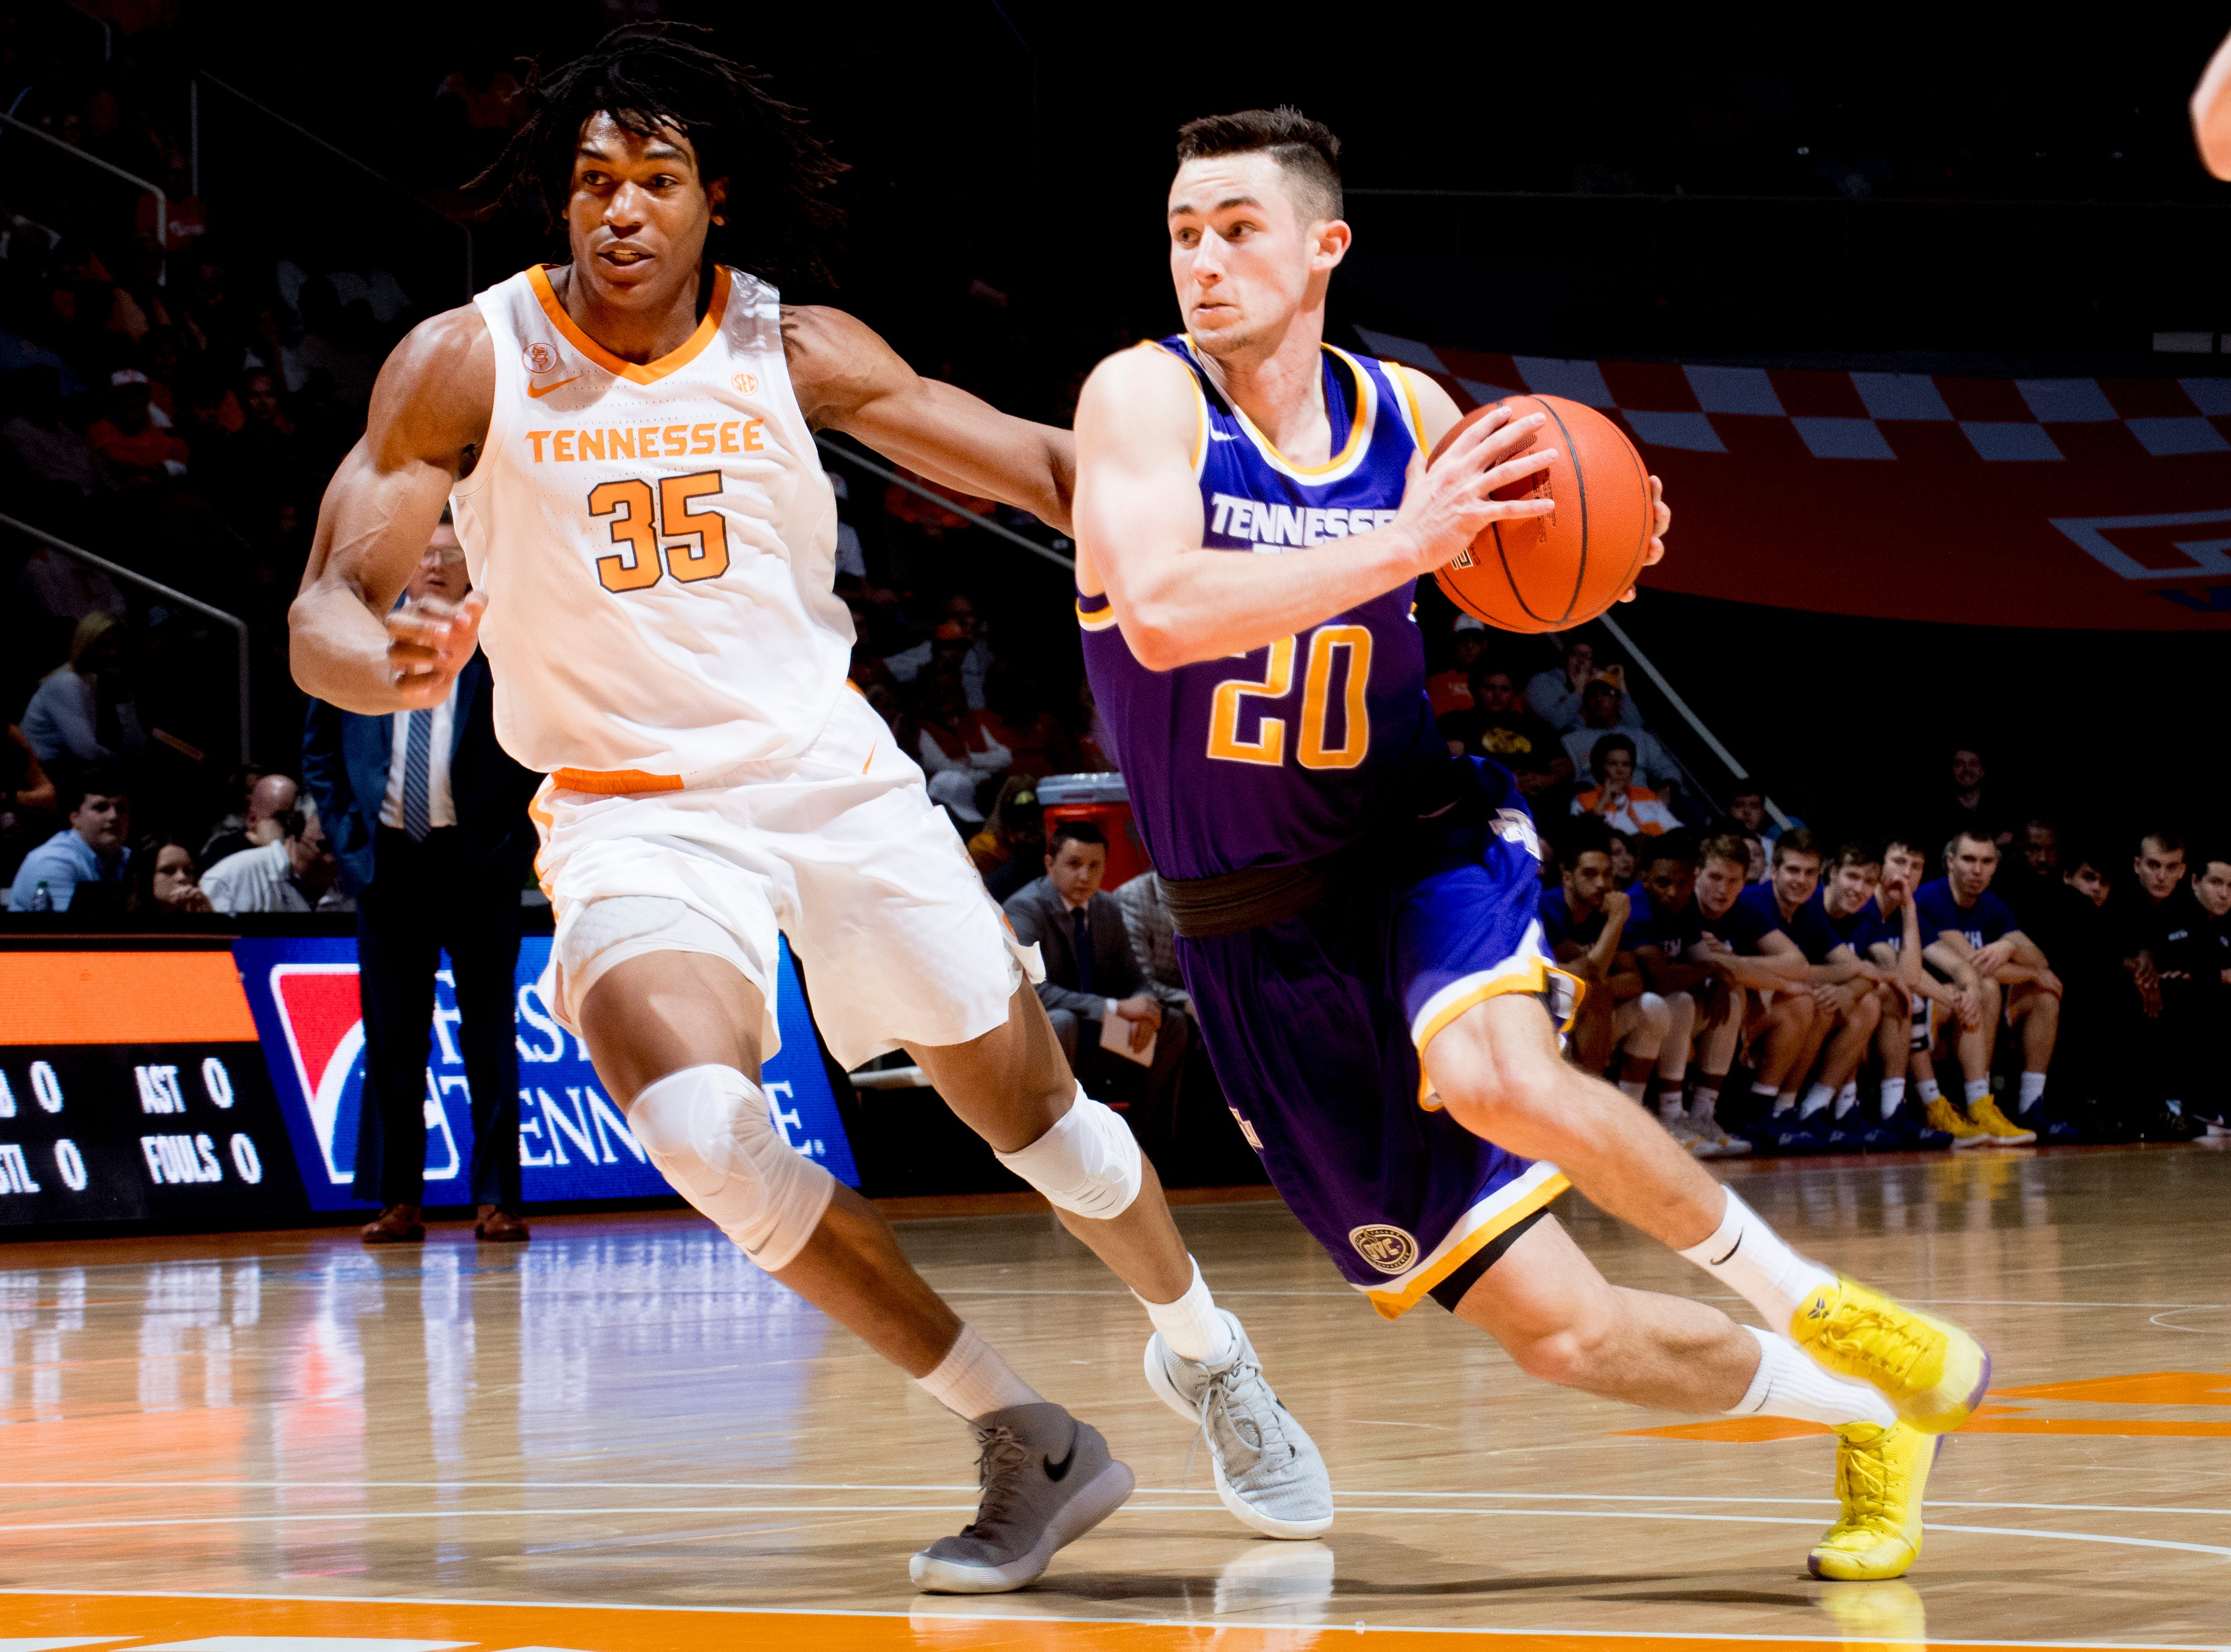 Tennessee Tech guard Hunter Vick (20) drives the ball past Tennessee guard/forward Yves Pons (35) during a game between Tennessee and Tennessee Tech at Thompson-Boling Arena in Knoxville, Tennessee on Saturday, December 29, 2018.